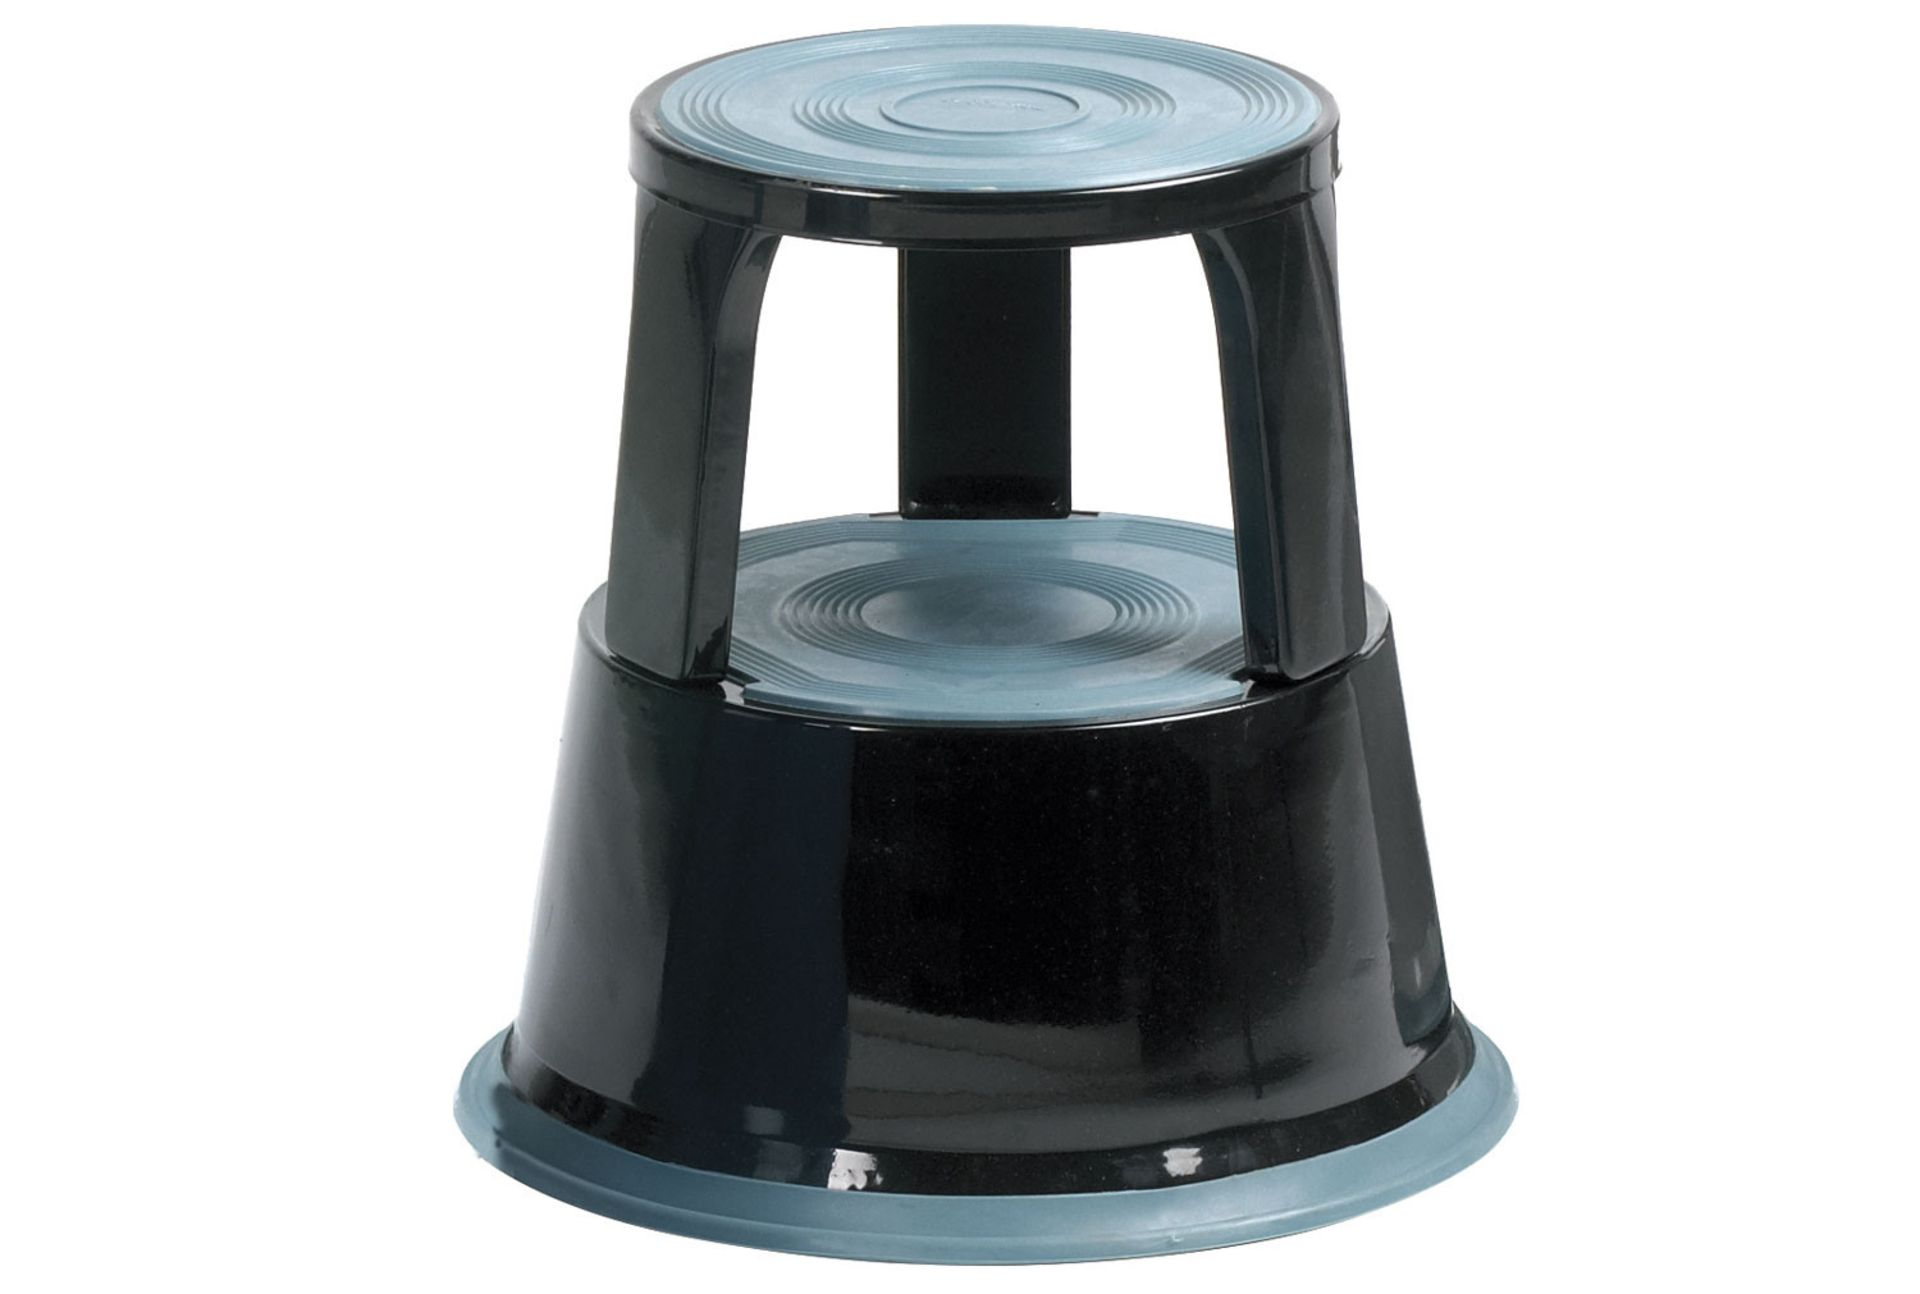 Kickstep Top Step For Office / Warehouse / Stores / Home